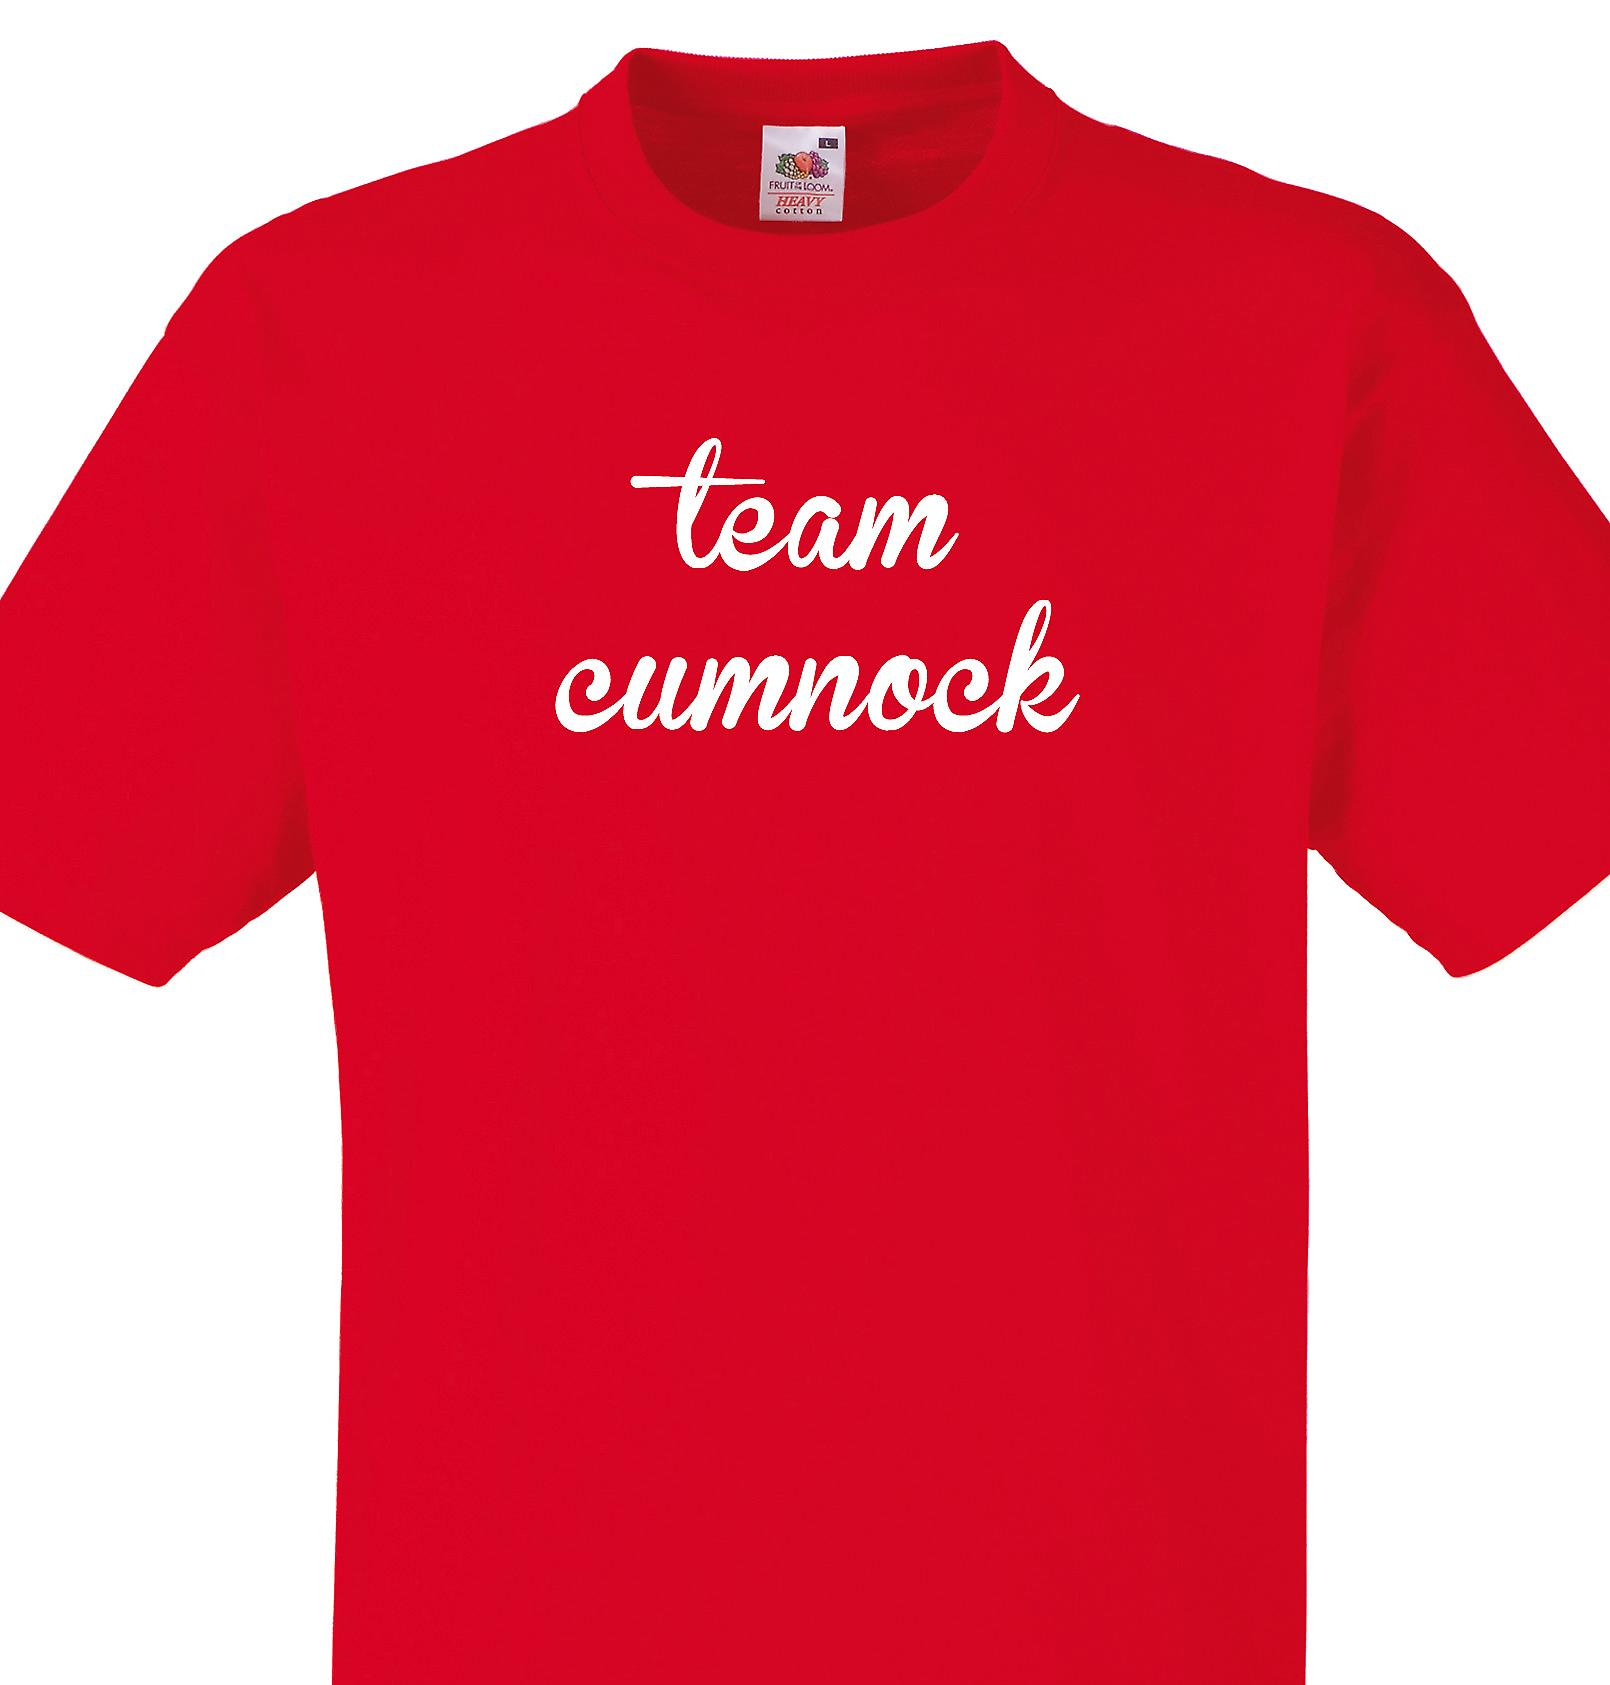 Team Cumnock Red T shirt